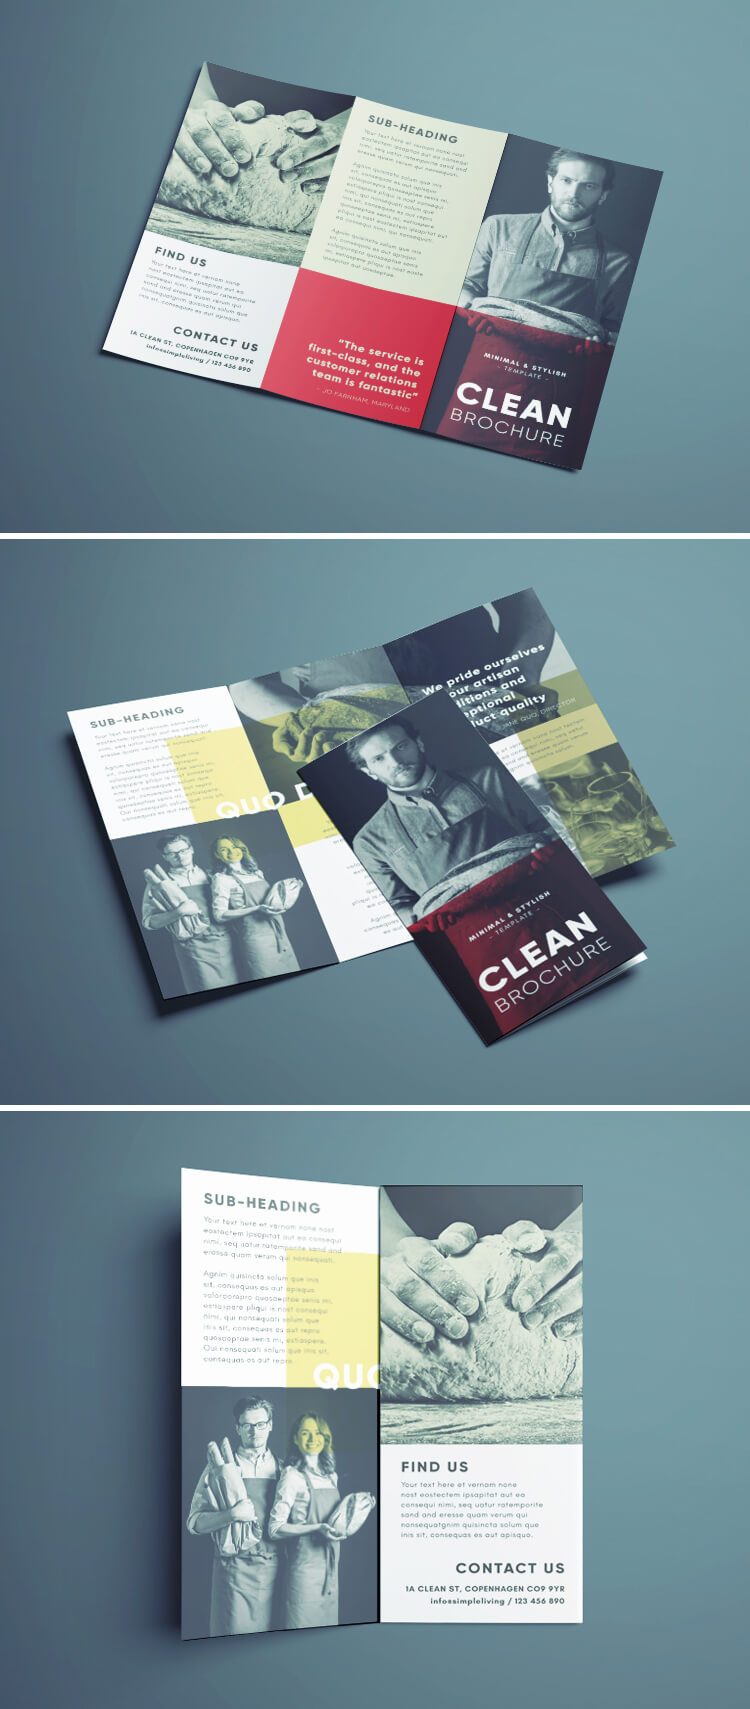 Amazing Clean Trifold Brochure Template Free Download - Free template brochure download